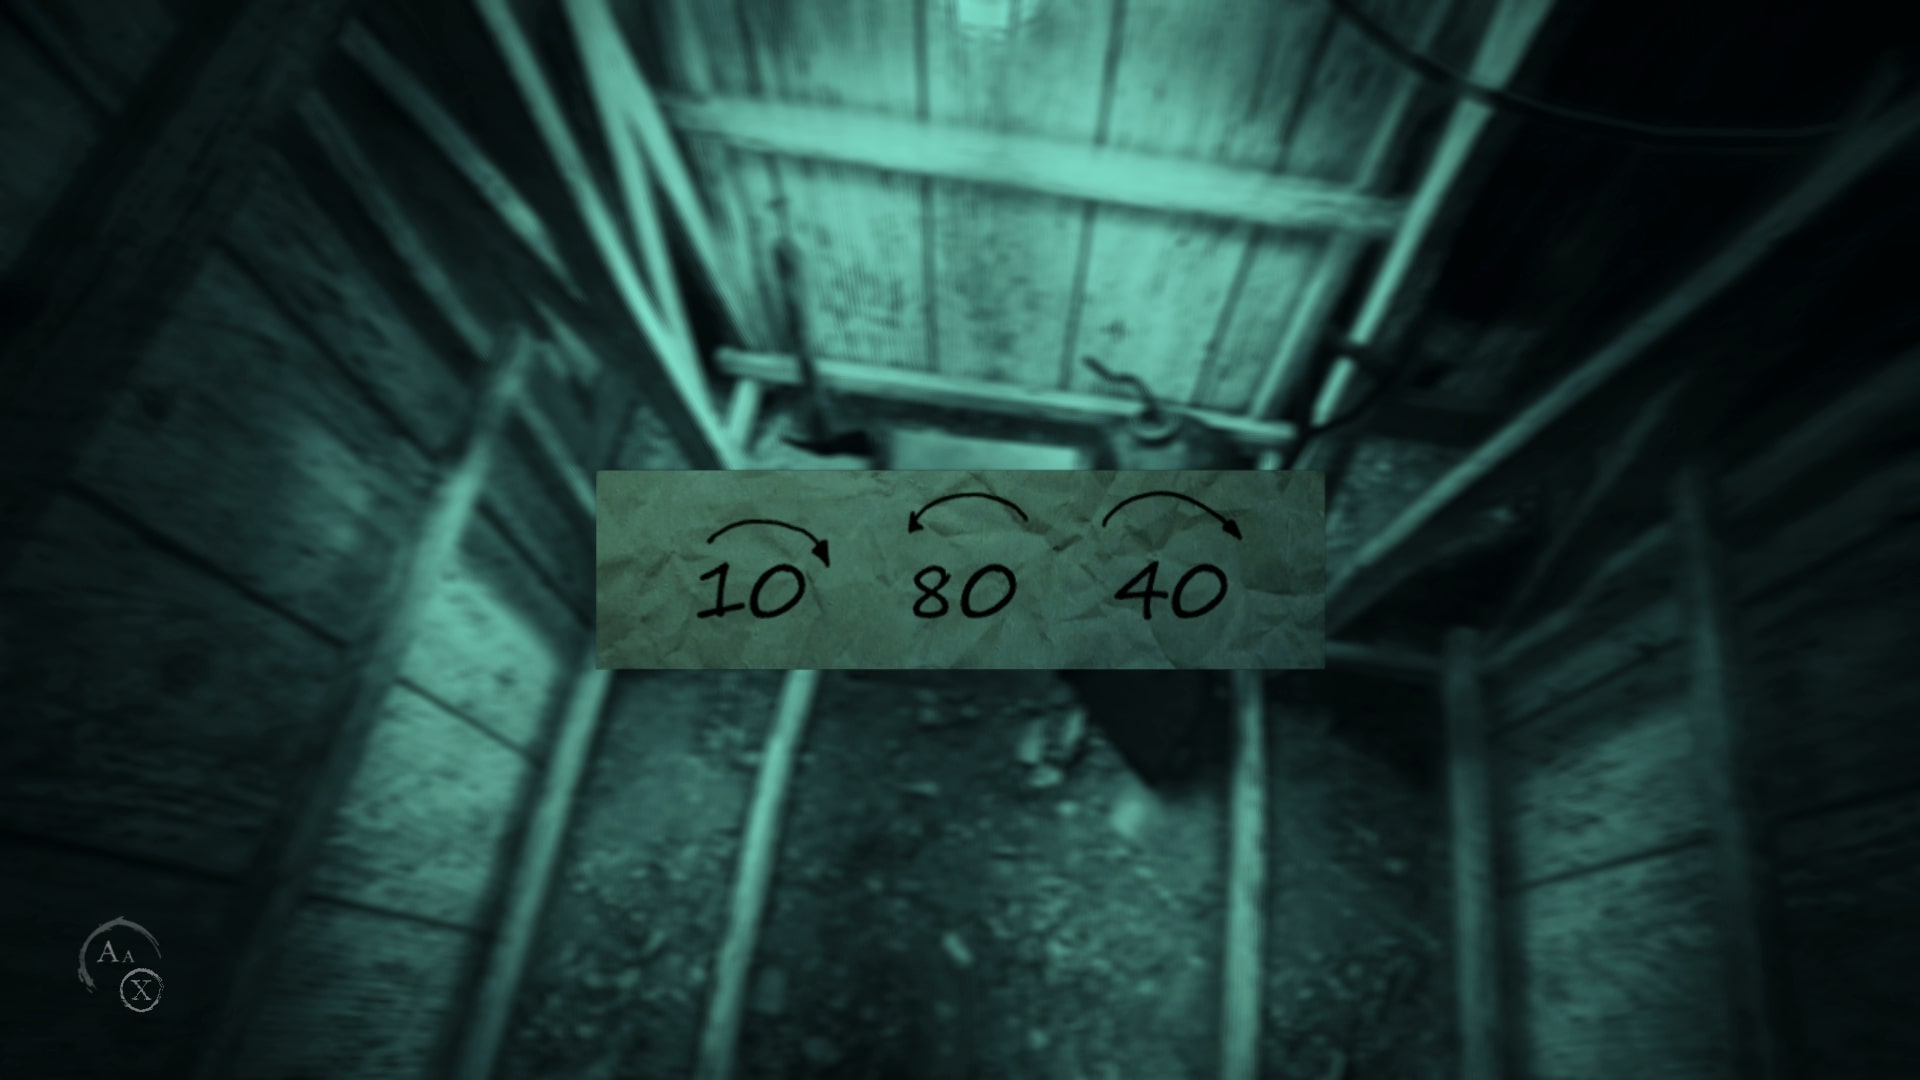 Layers of Fear 2 Puzzles Walkthrough - Lock Combinations, Projector